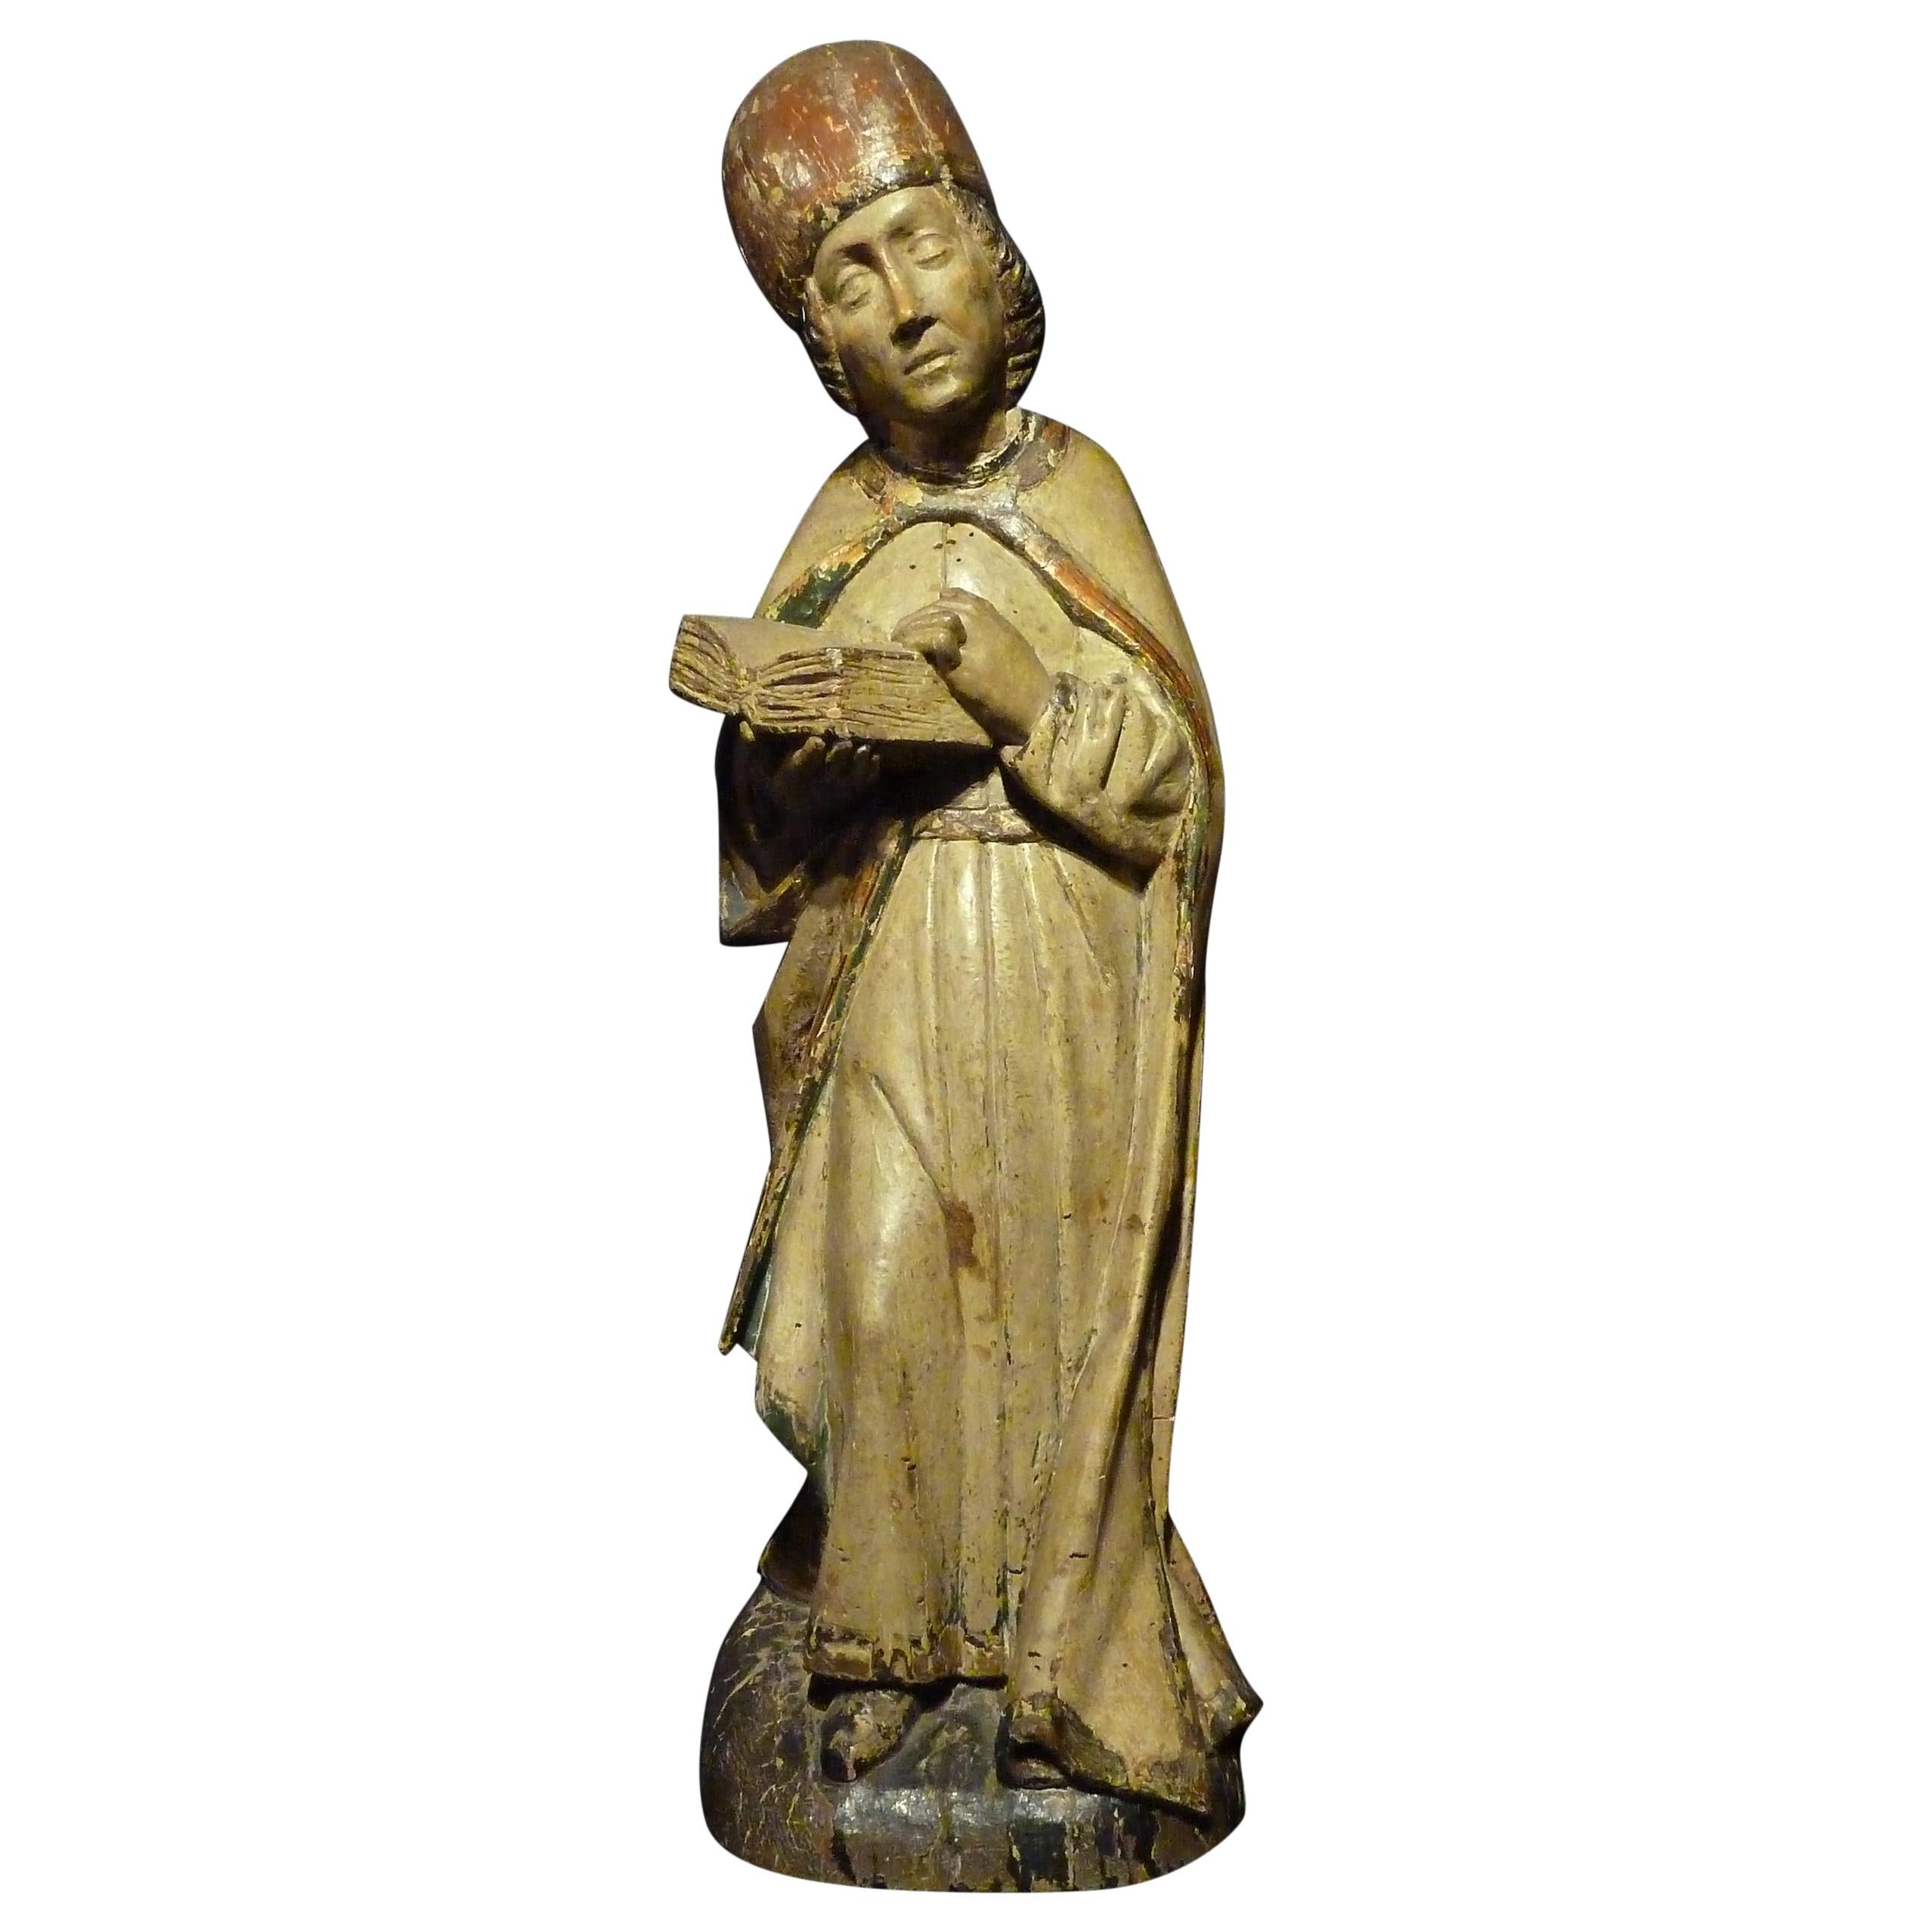 Sculpture in Polychrome Wood, Depicting Bishop